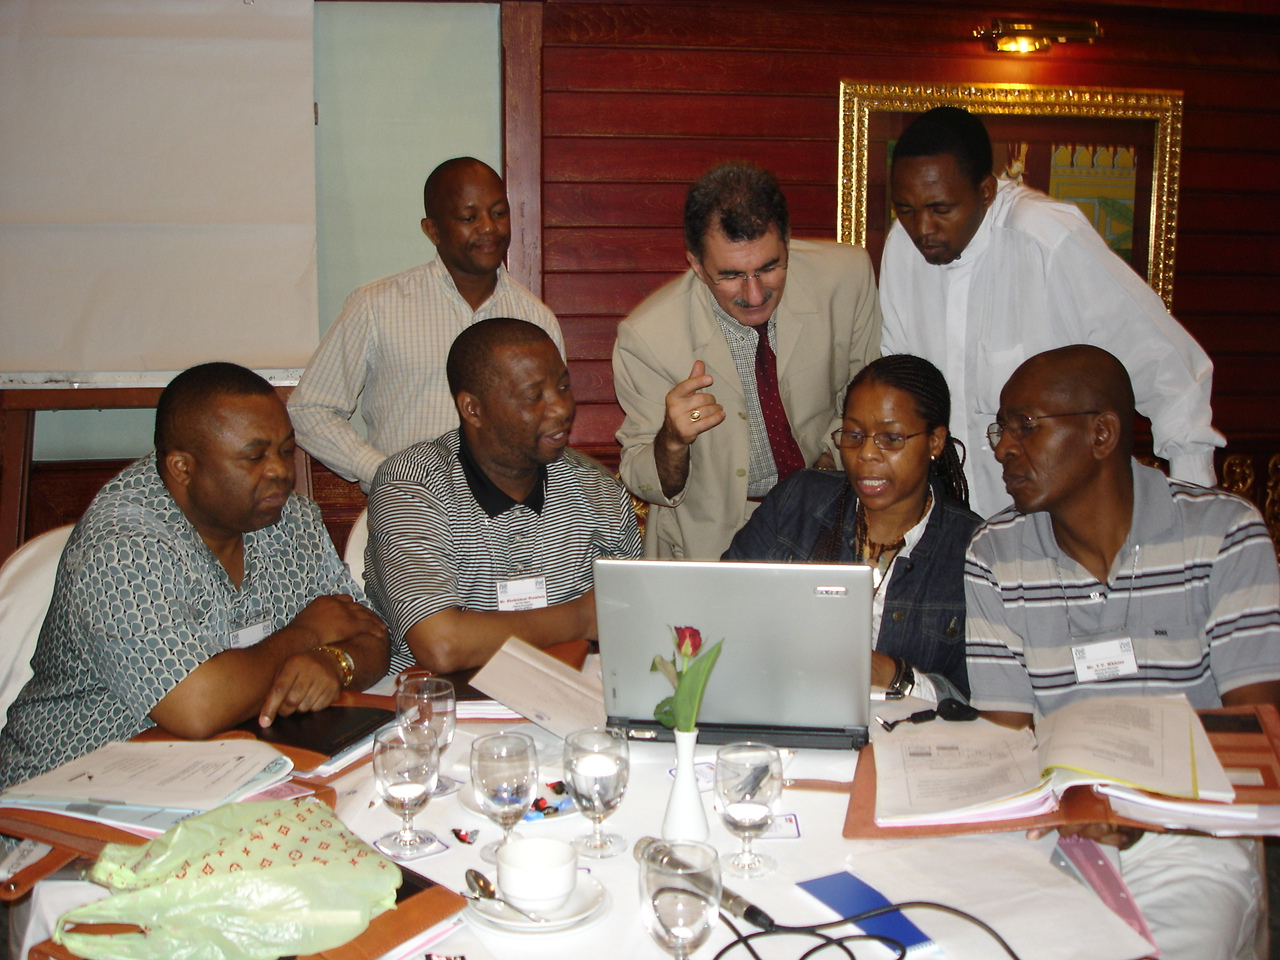 Behnam Tai, Programme Director with the participants from South Africa during preparation of action plan in a workshop session held in Bangkok, Thailand.